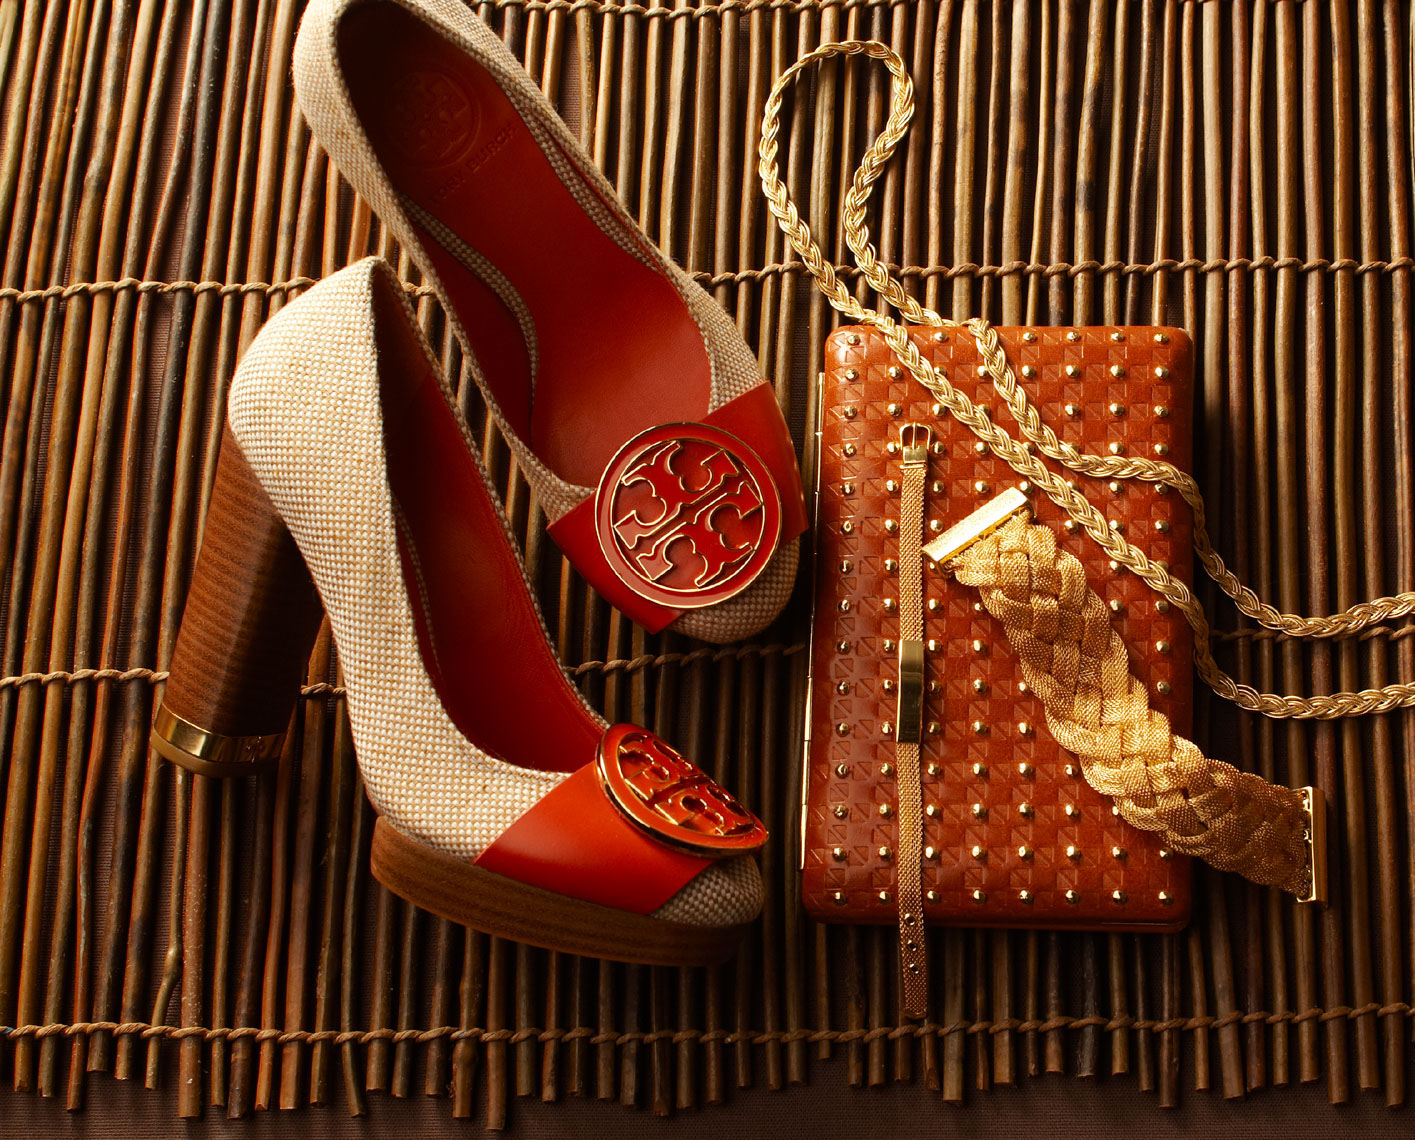 red and tan shoes with wooden heels next to brown handbag and jewelry